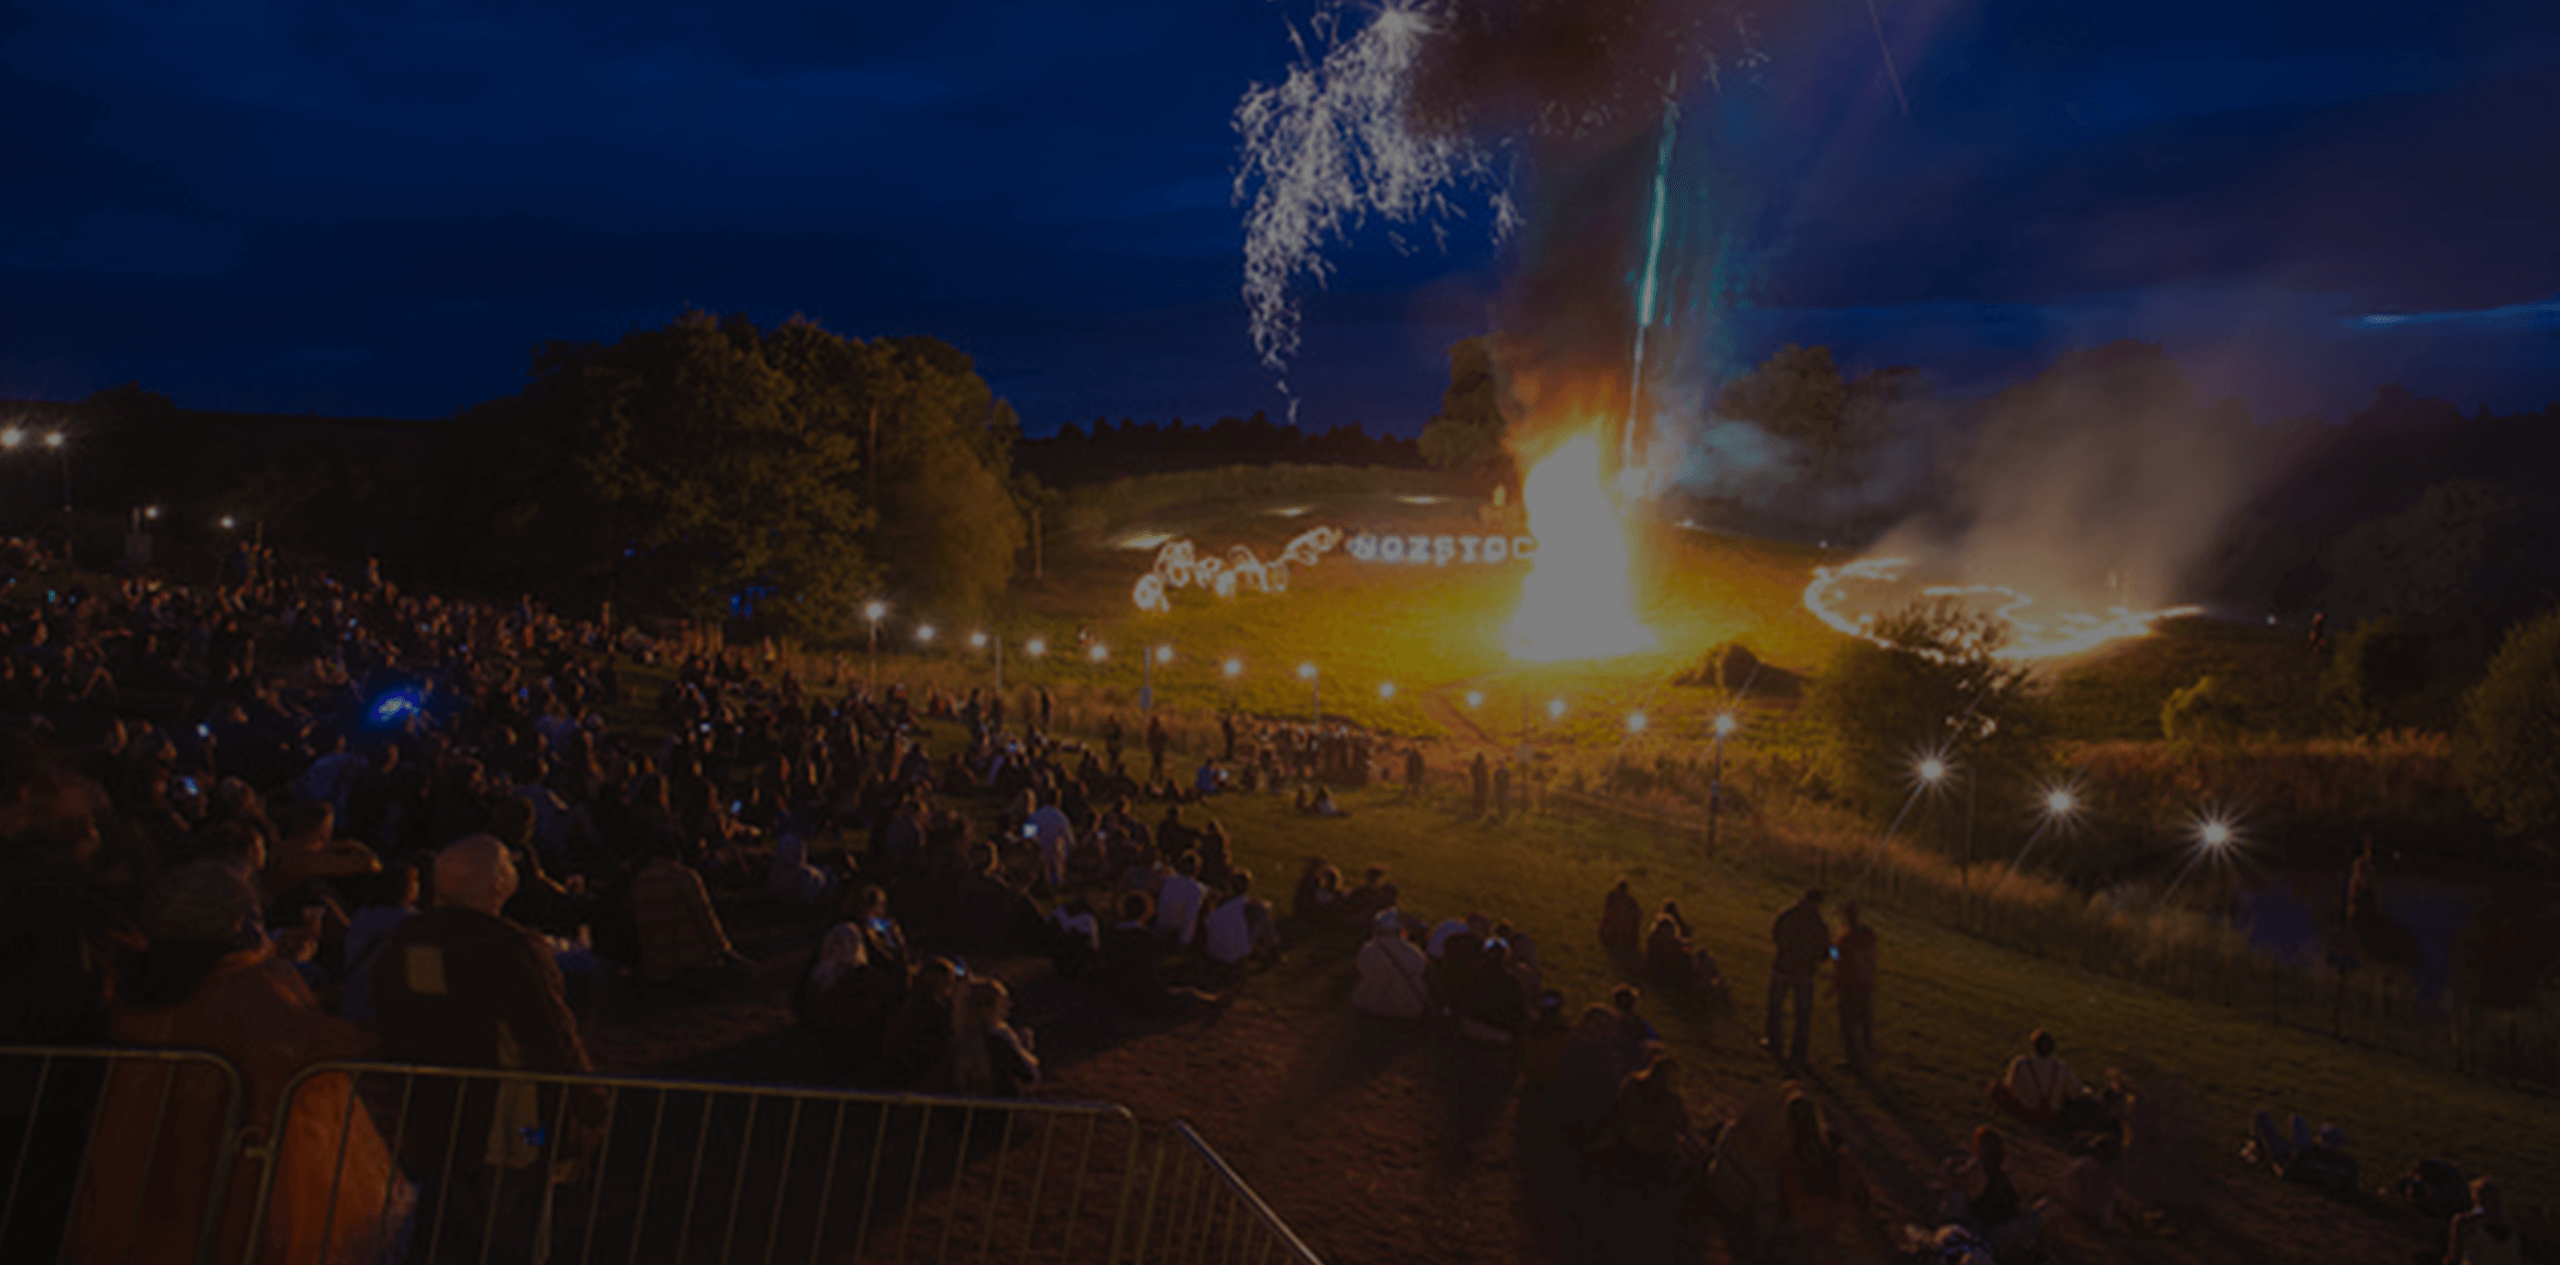 Volunteer at Nozstock 2016 for a free ticket + barrels o' laughs…